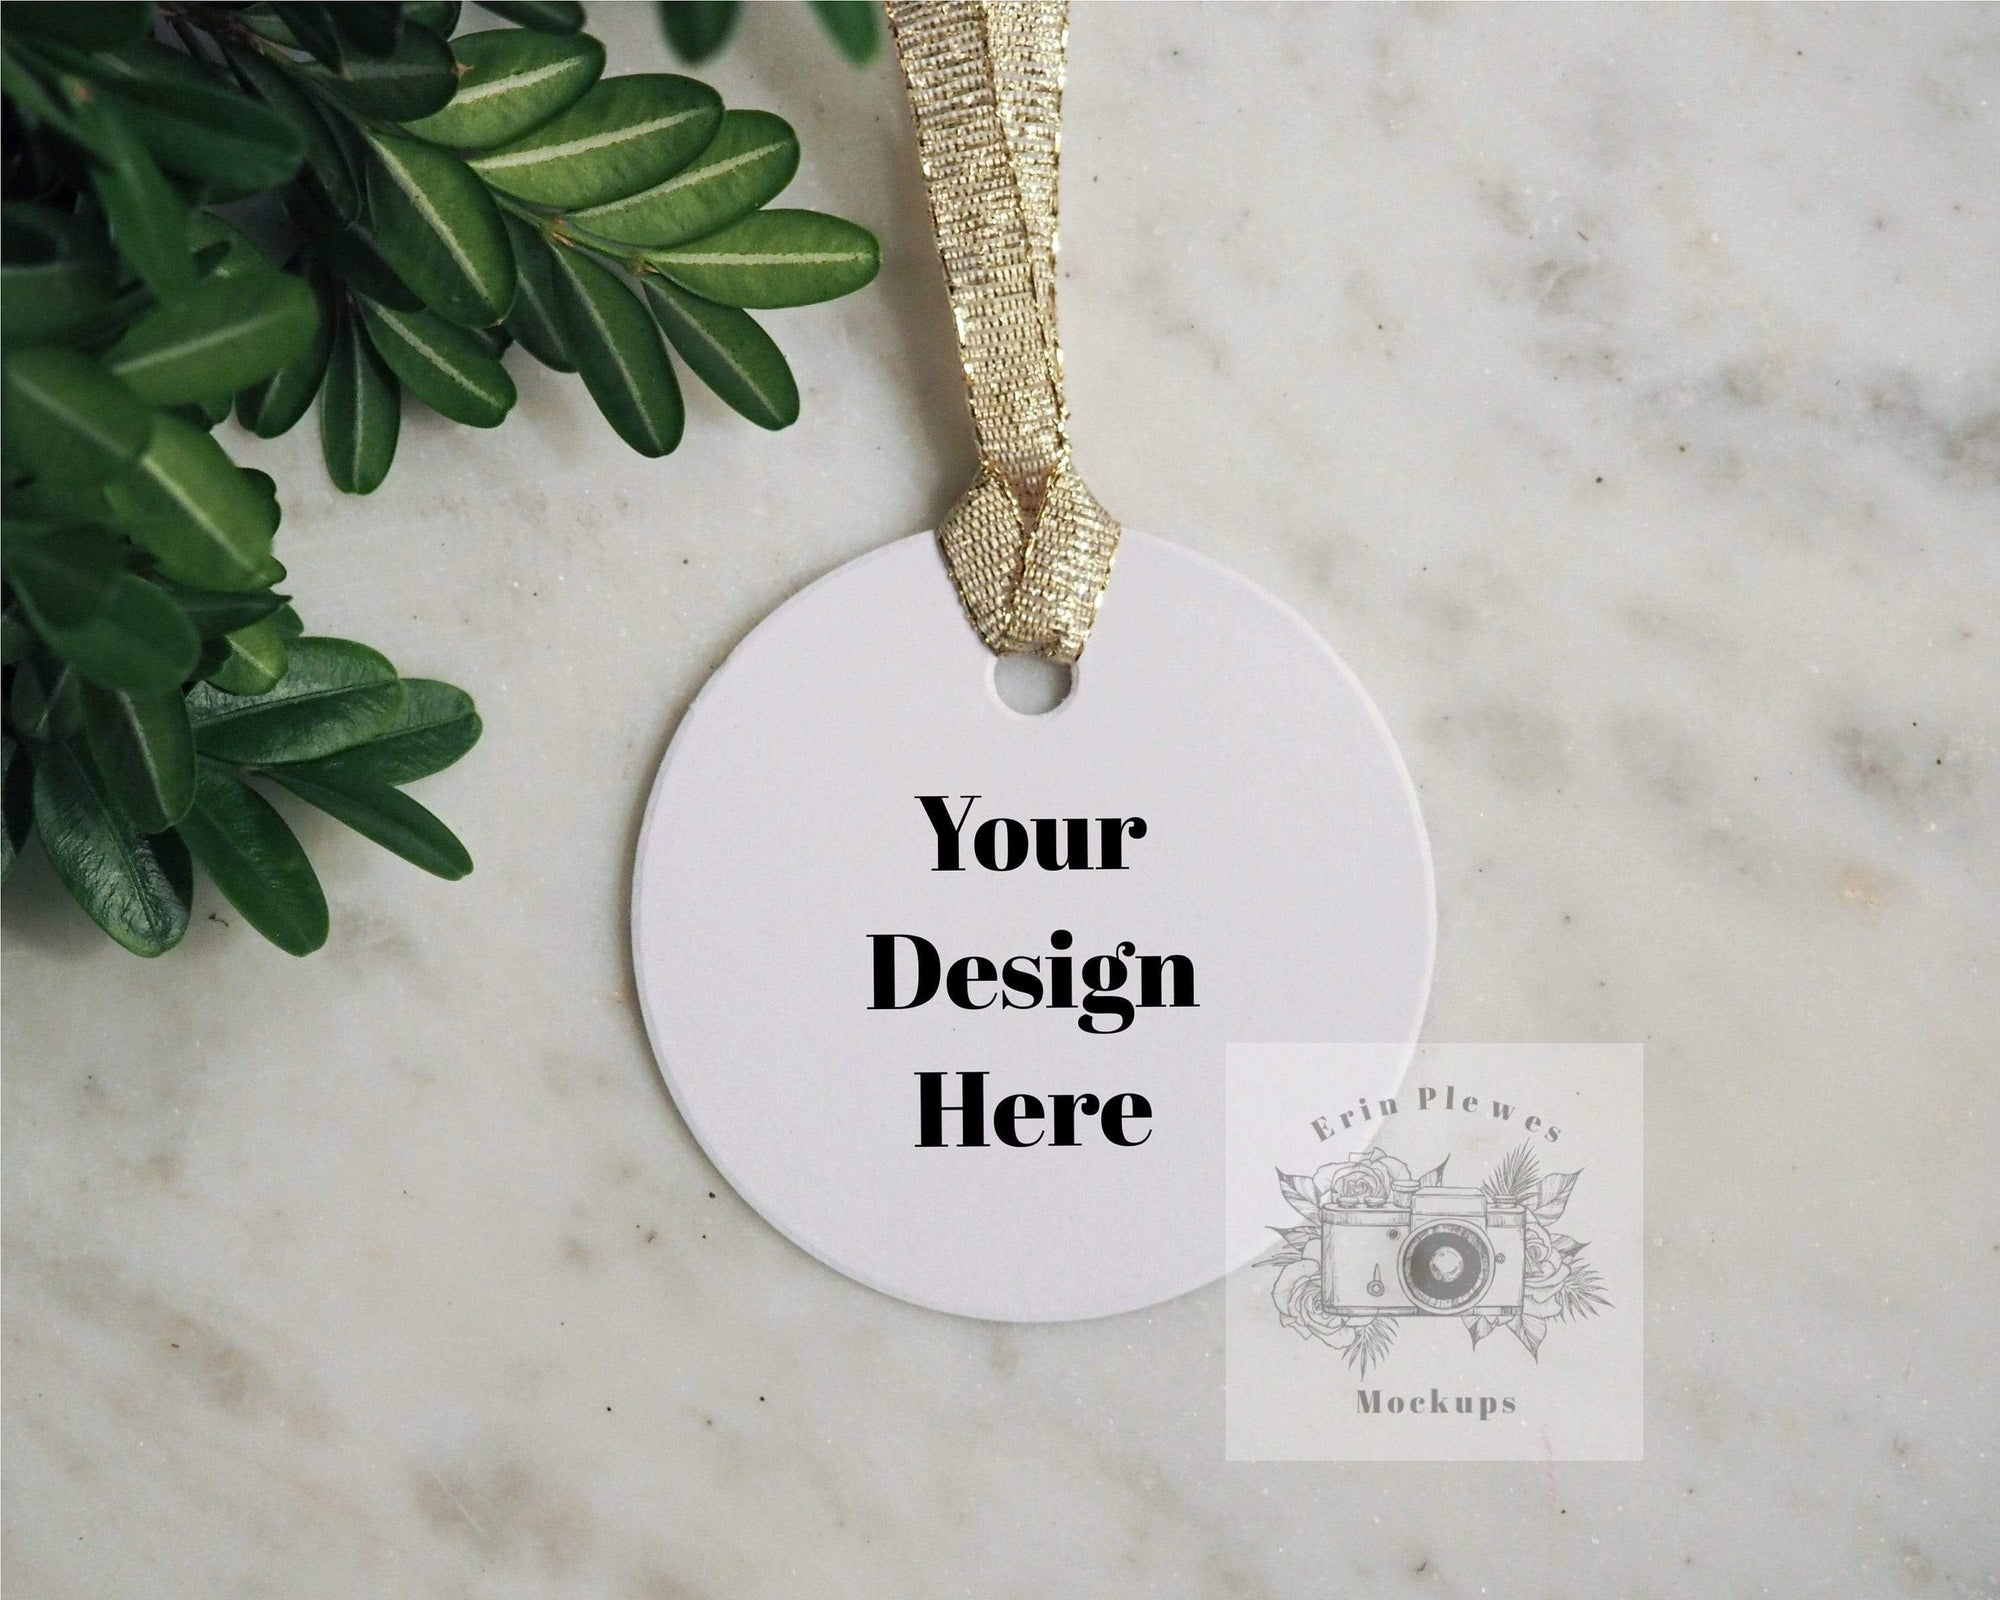 Erin Plewes Mockups Round gift tag mockup, Label mock-up for thank you gift and present flat lay for lifestyle photo, JPG instant Digital Download